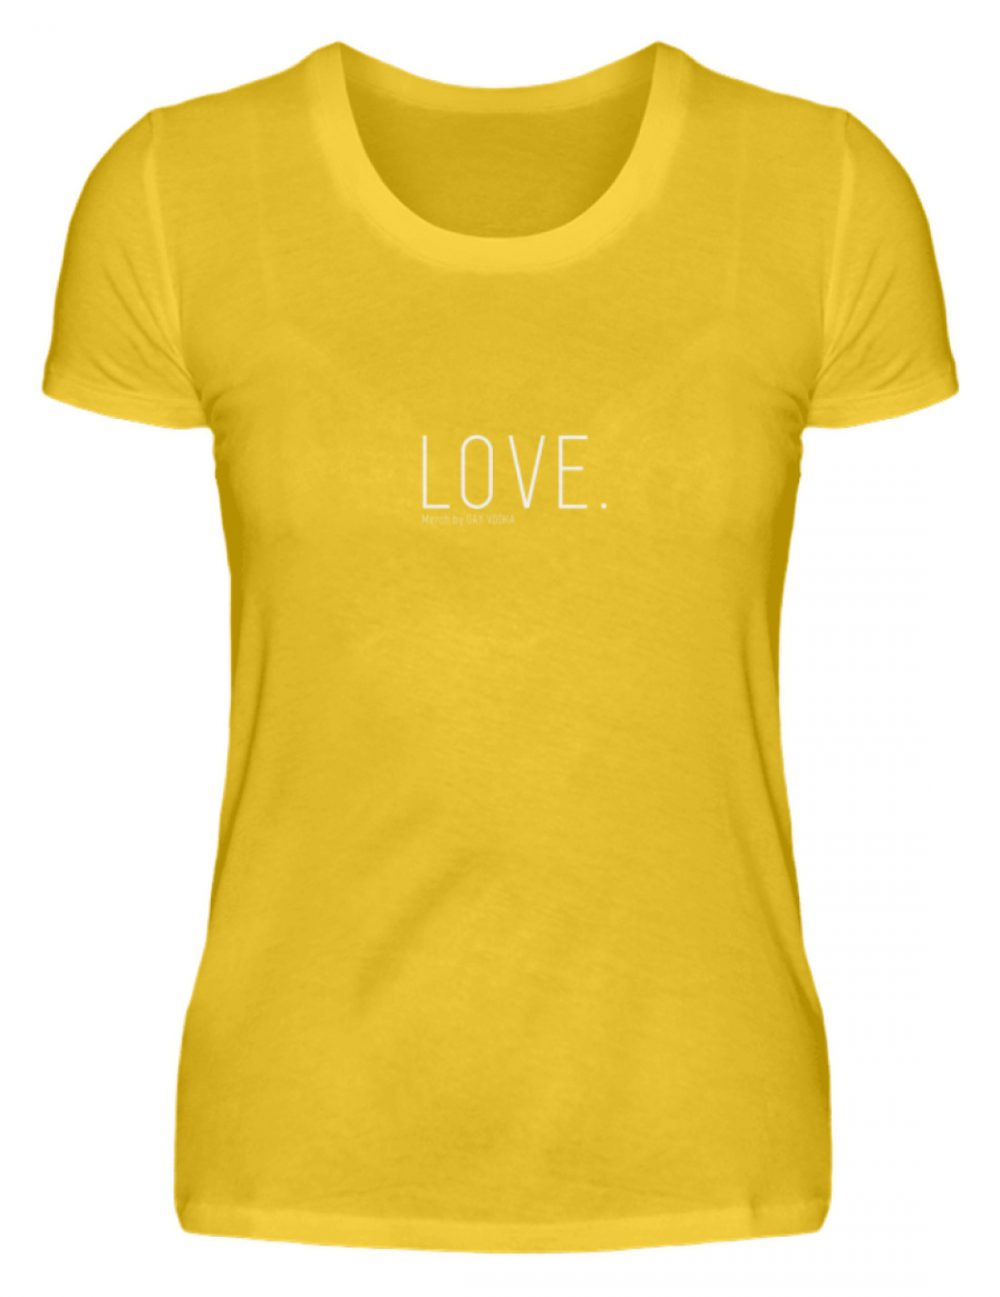 LOVE. - Damenshirt-3201